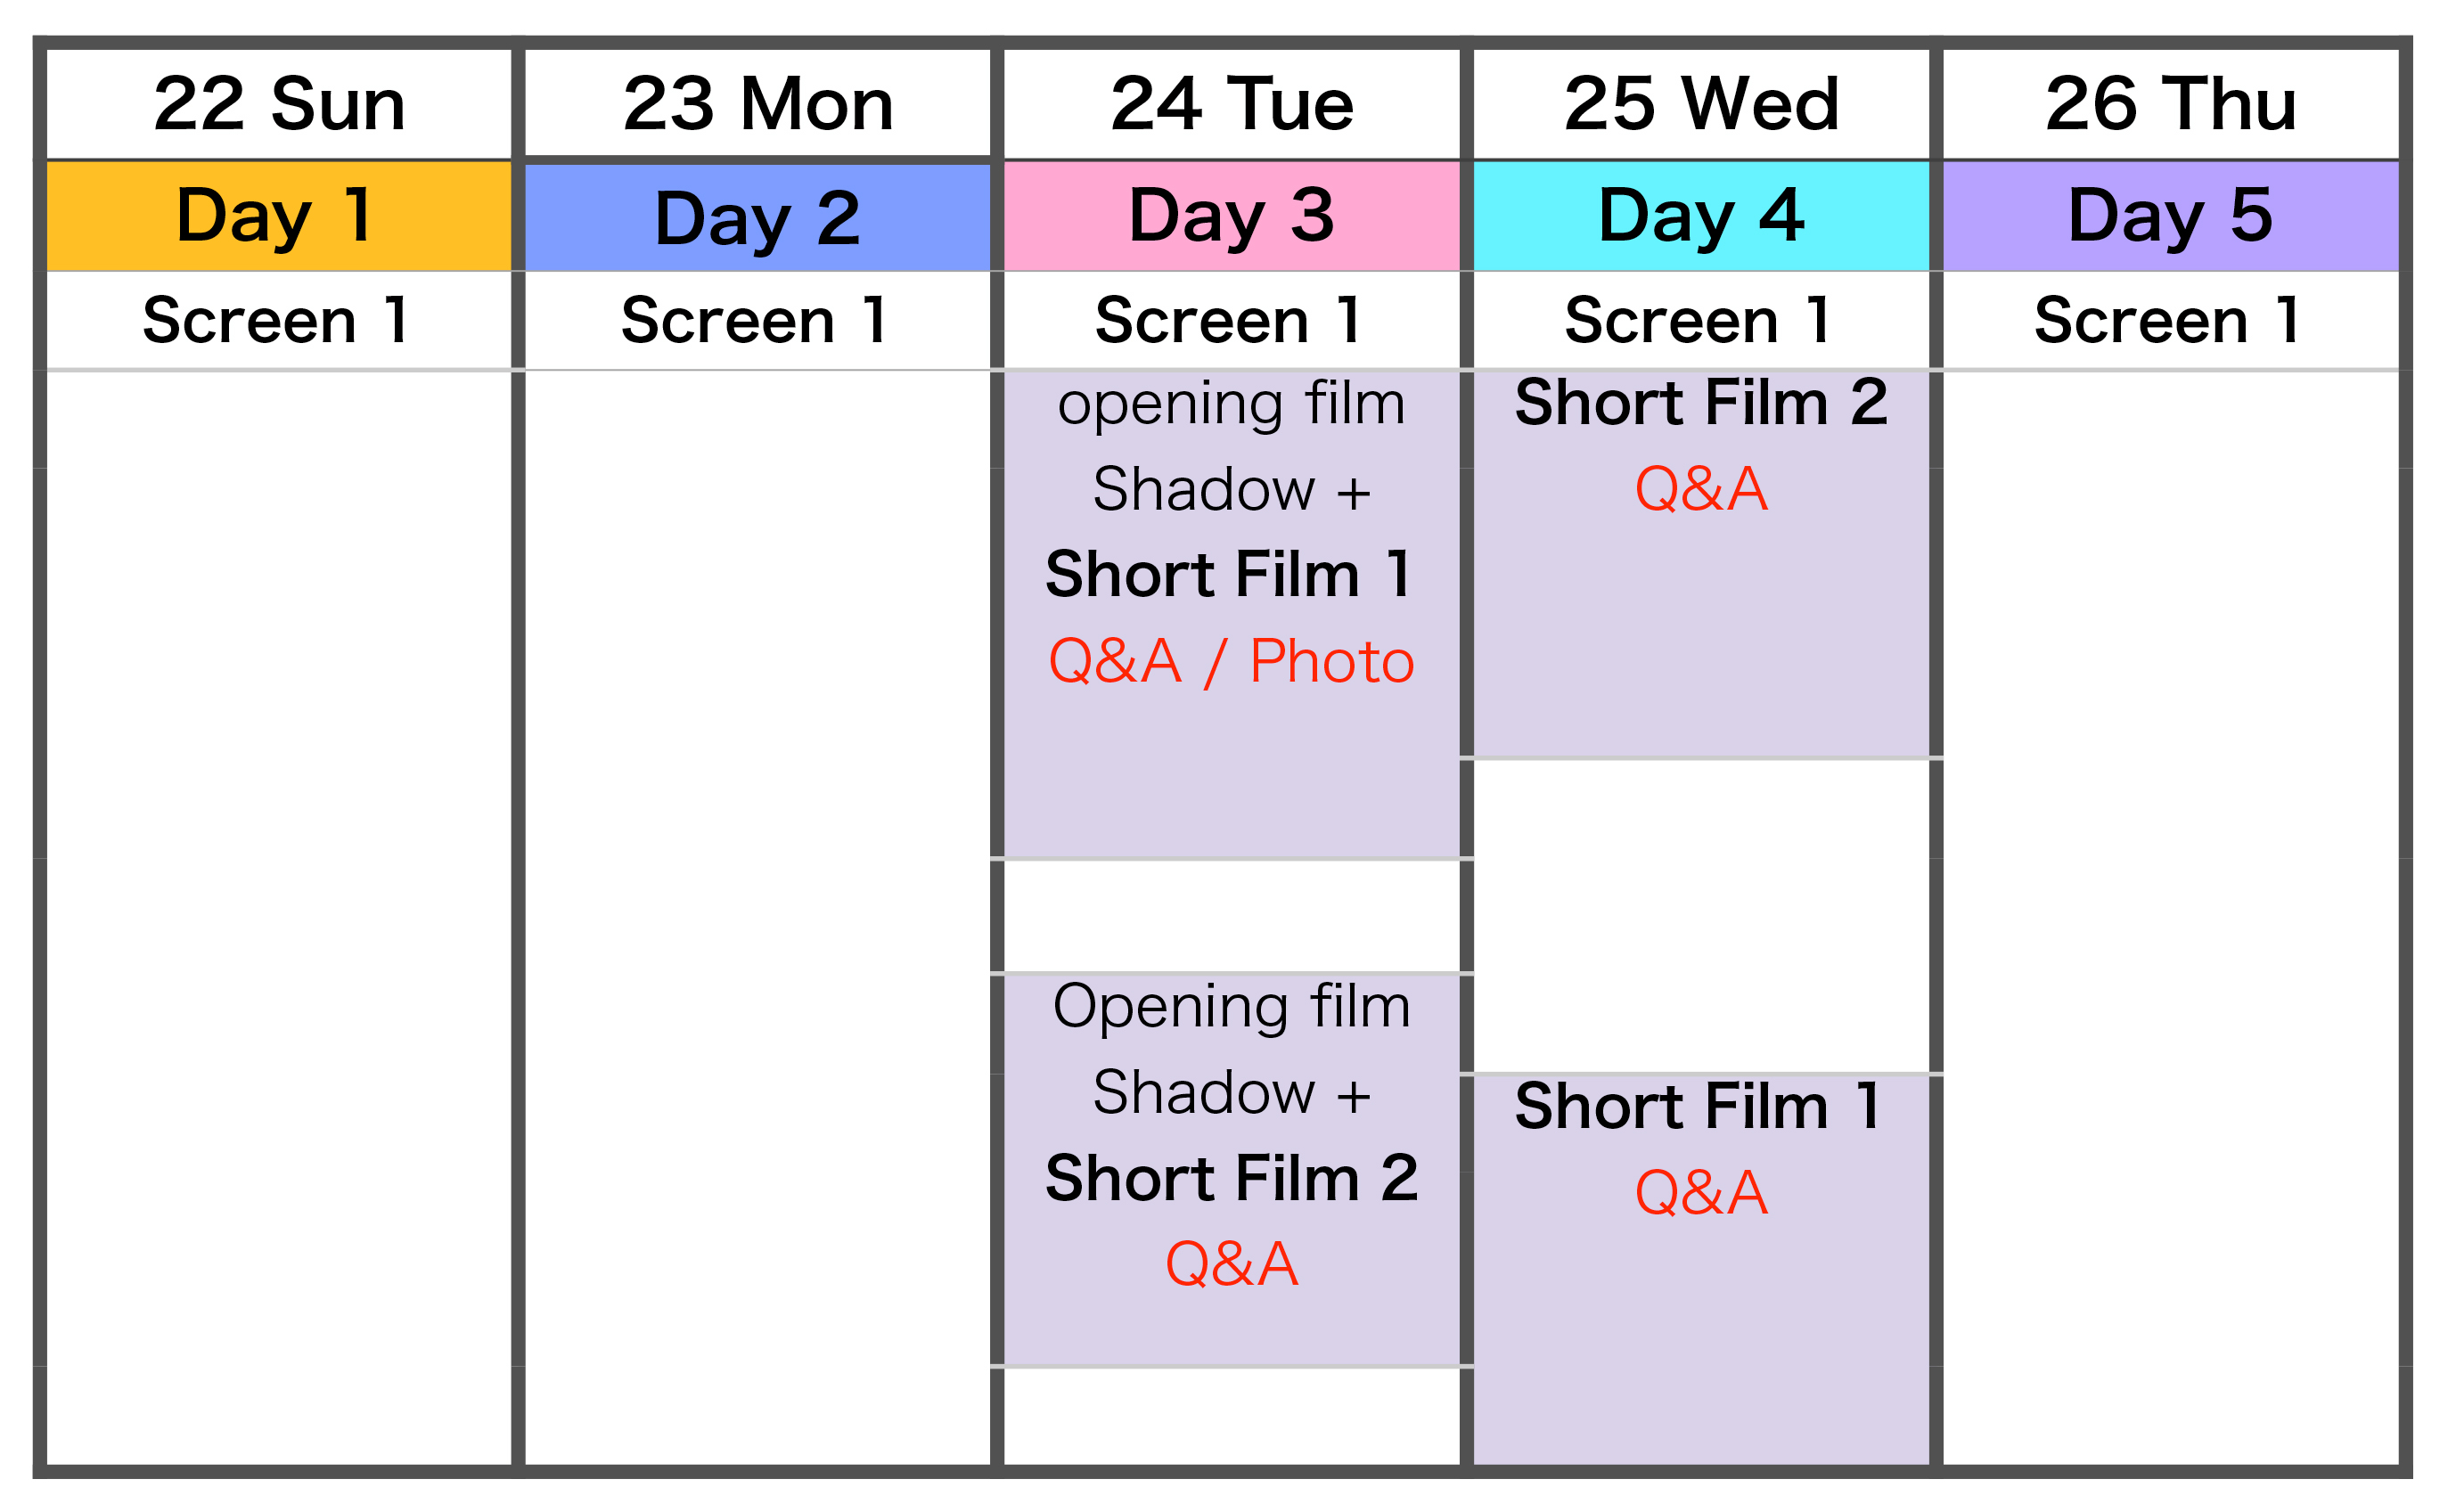 P&LFF 201 - Section Schedule.numbers